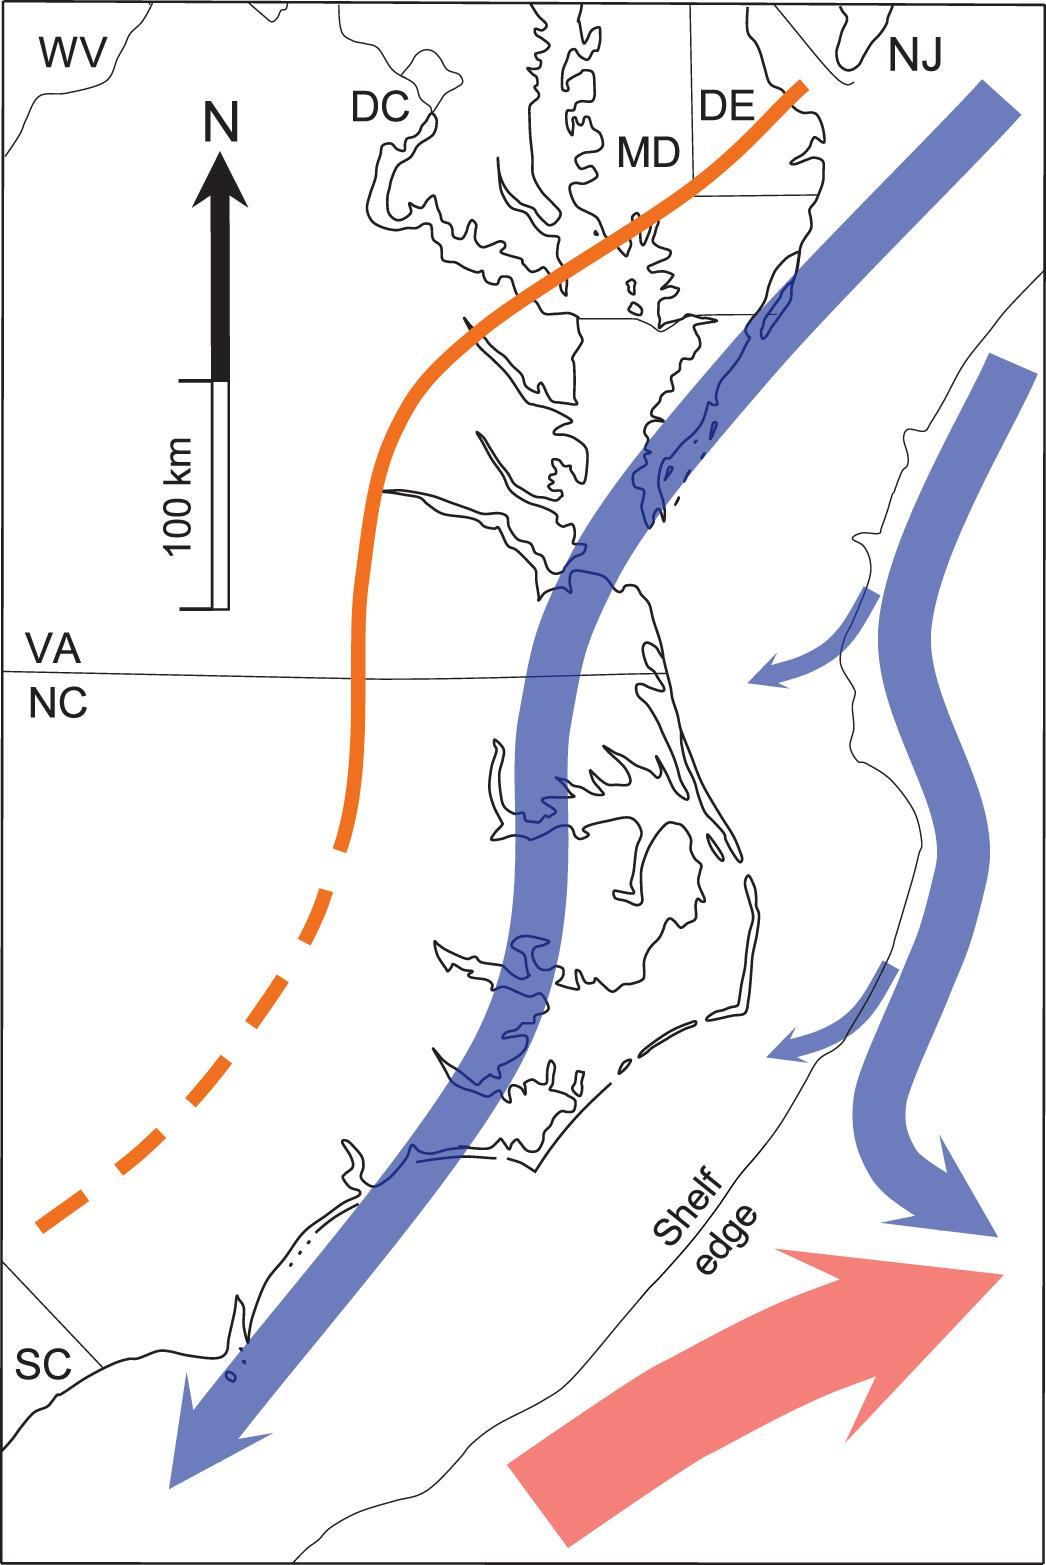 ISOTOPIC TEMPERATURES FROM THE EARLY AND MID-PLIOCENE OF THE US